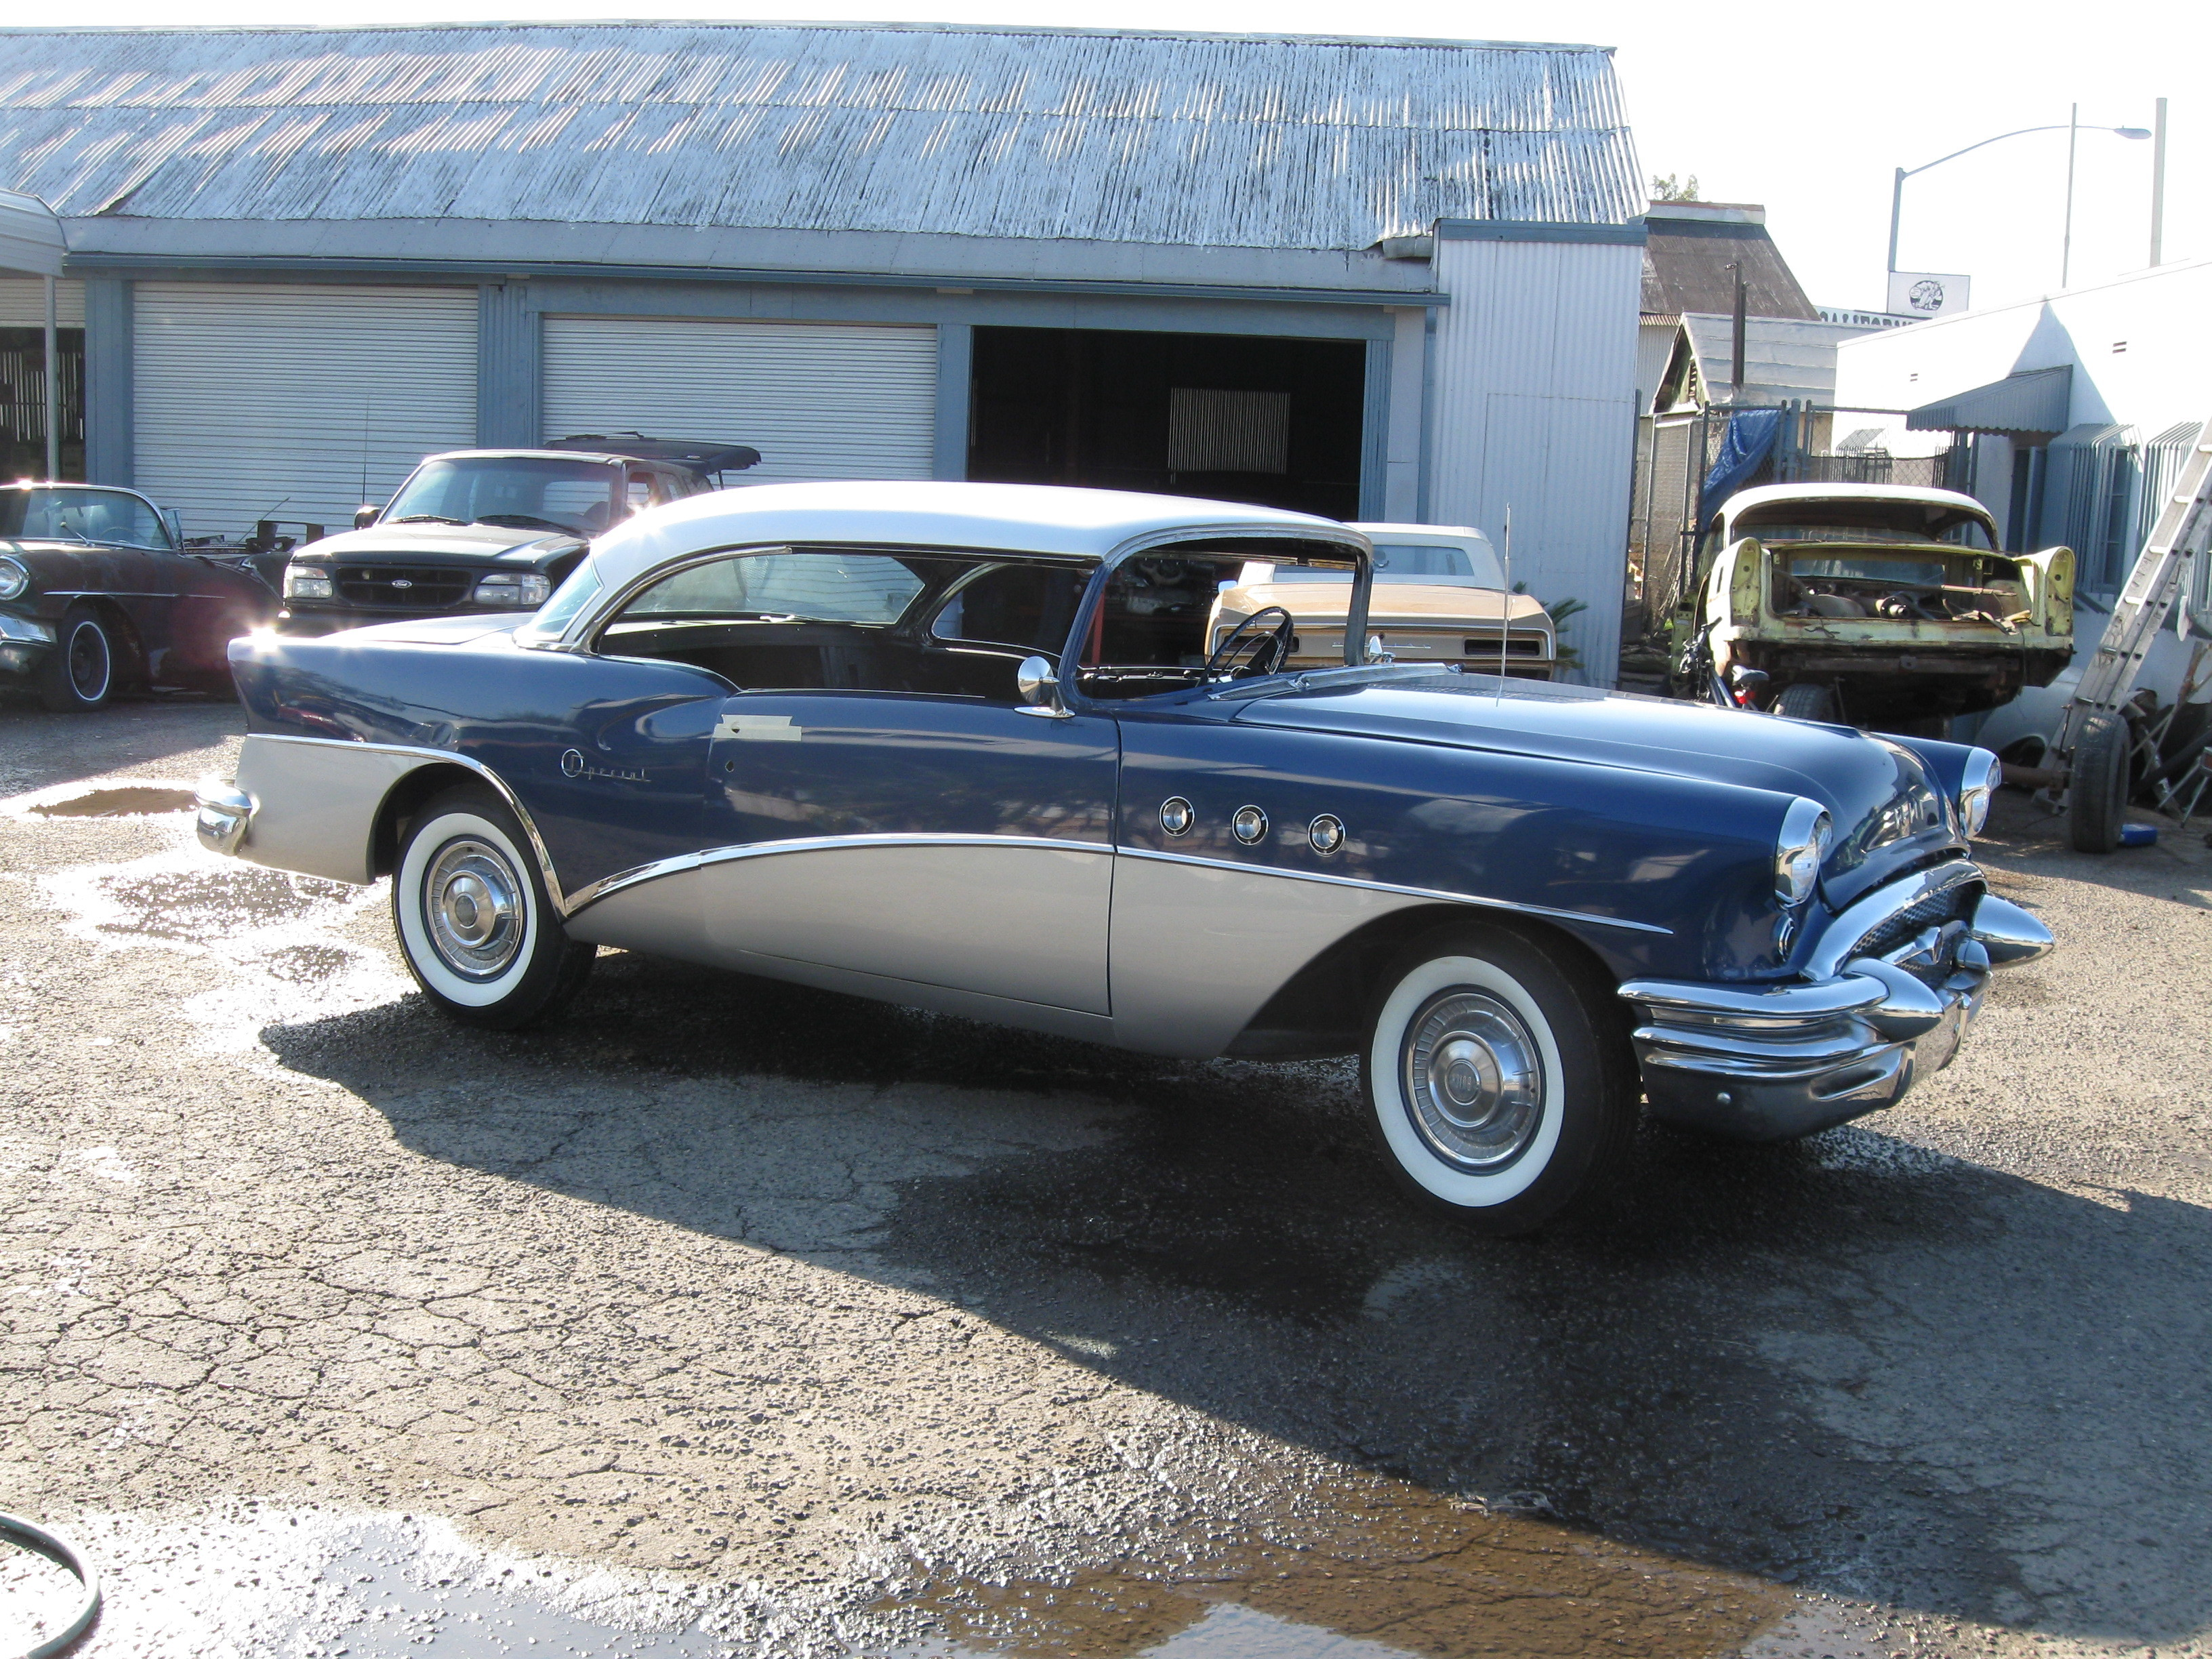 Jeep 4 Door buickgal 1955 Buick Special Specs, Photos, Modification ...